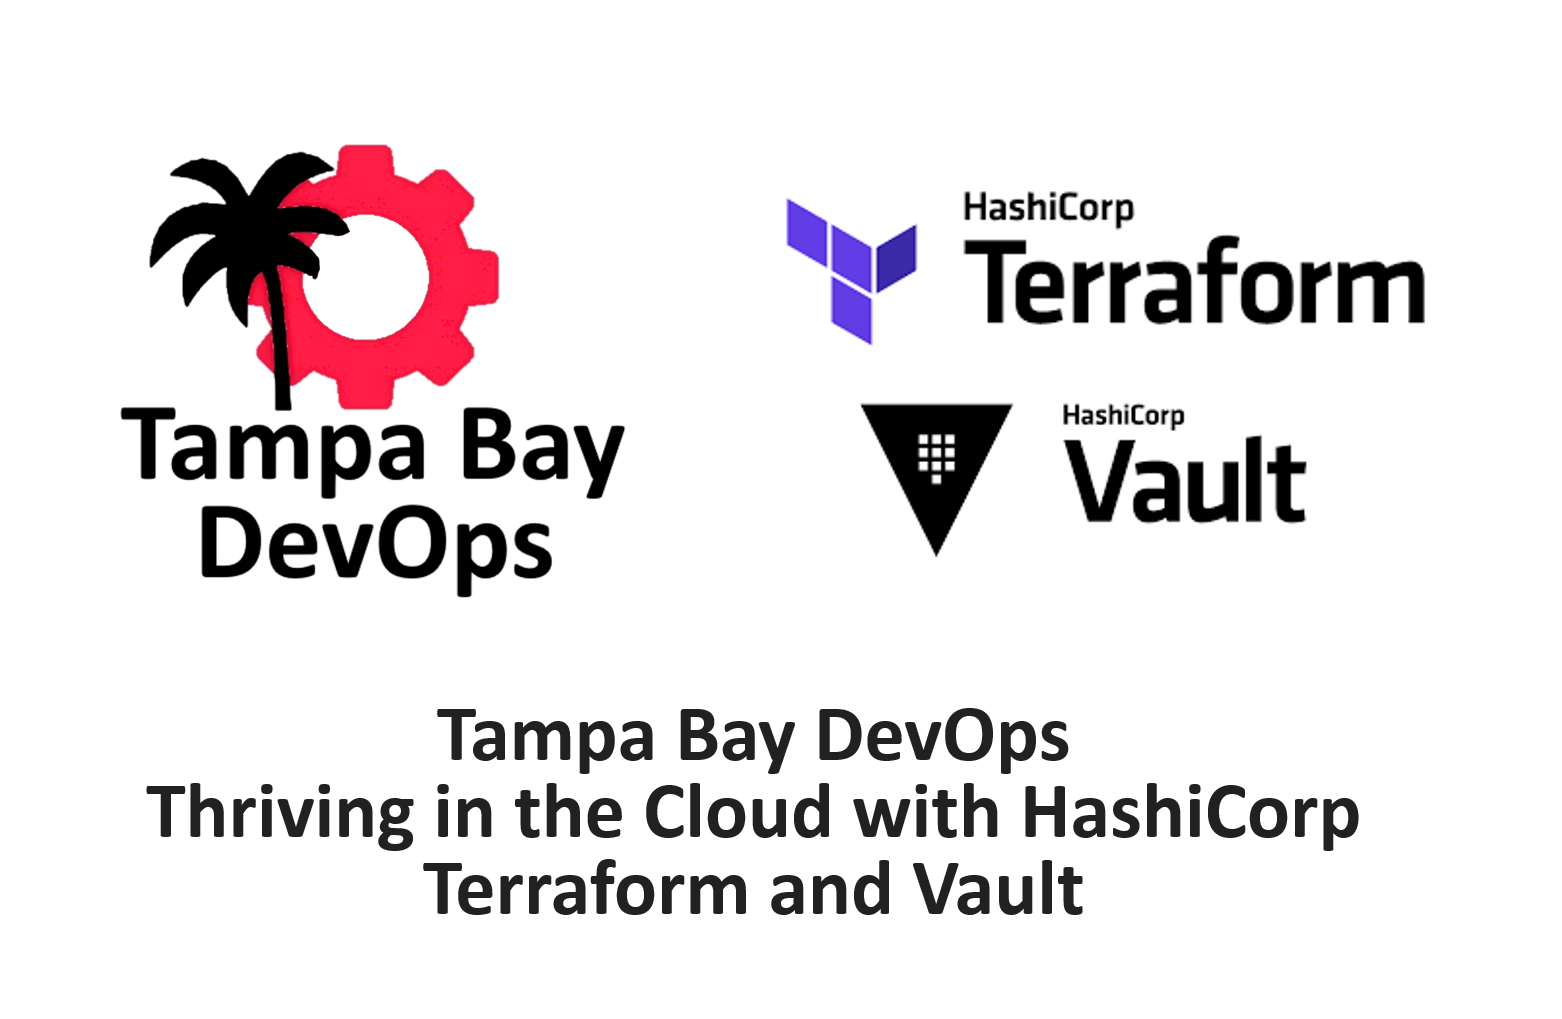 Tampa Bay DevOps